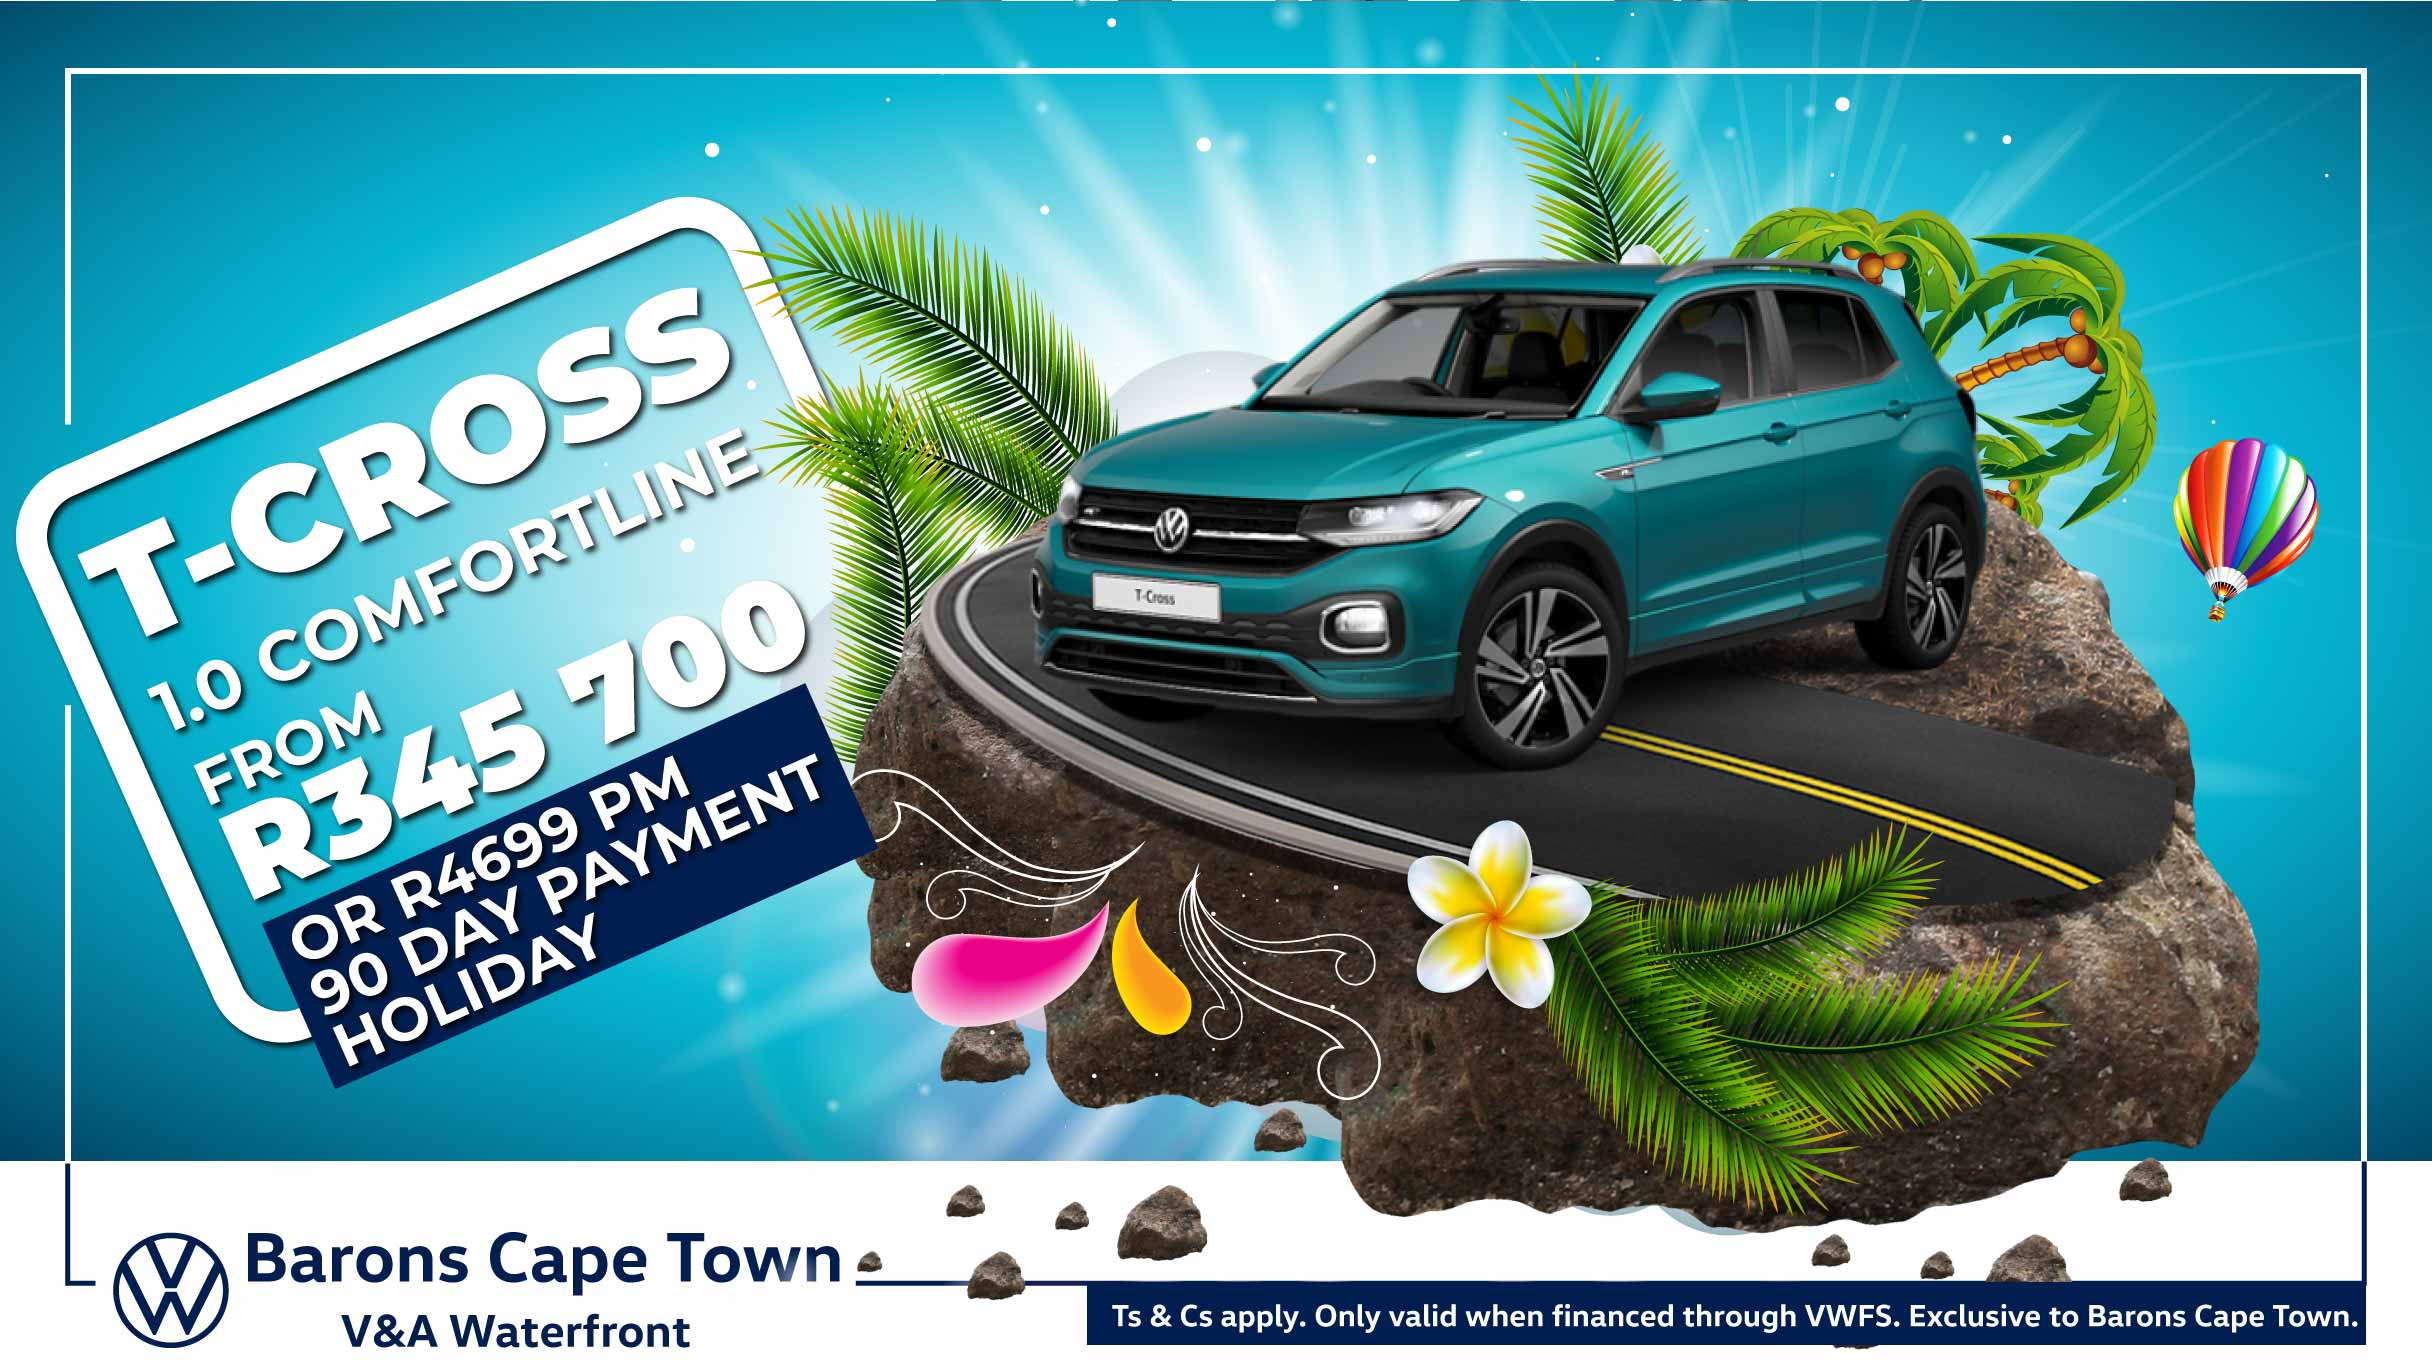 T-Cross Comfortline offer at Barons Cape Town